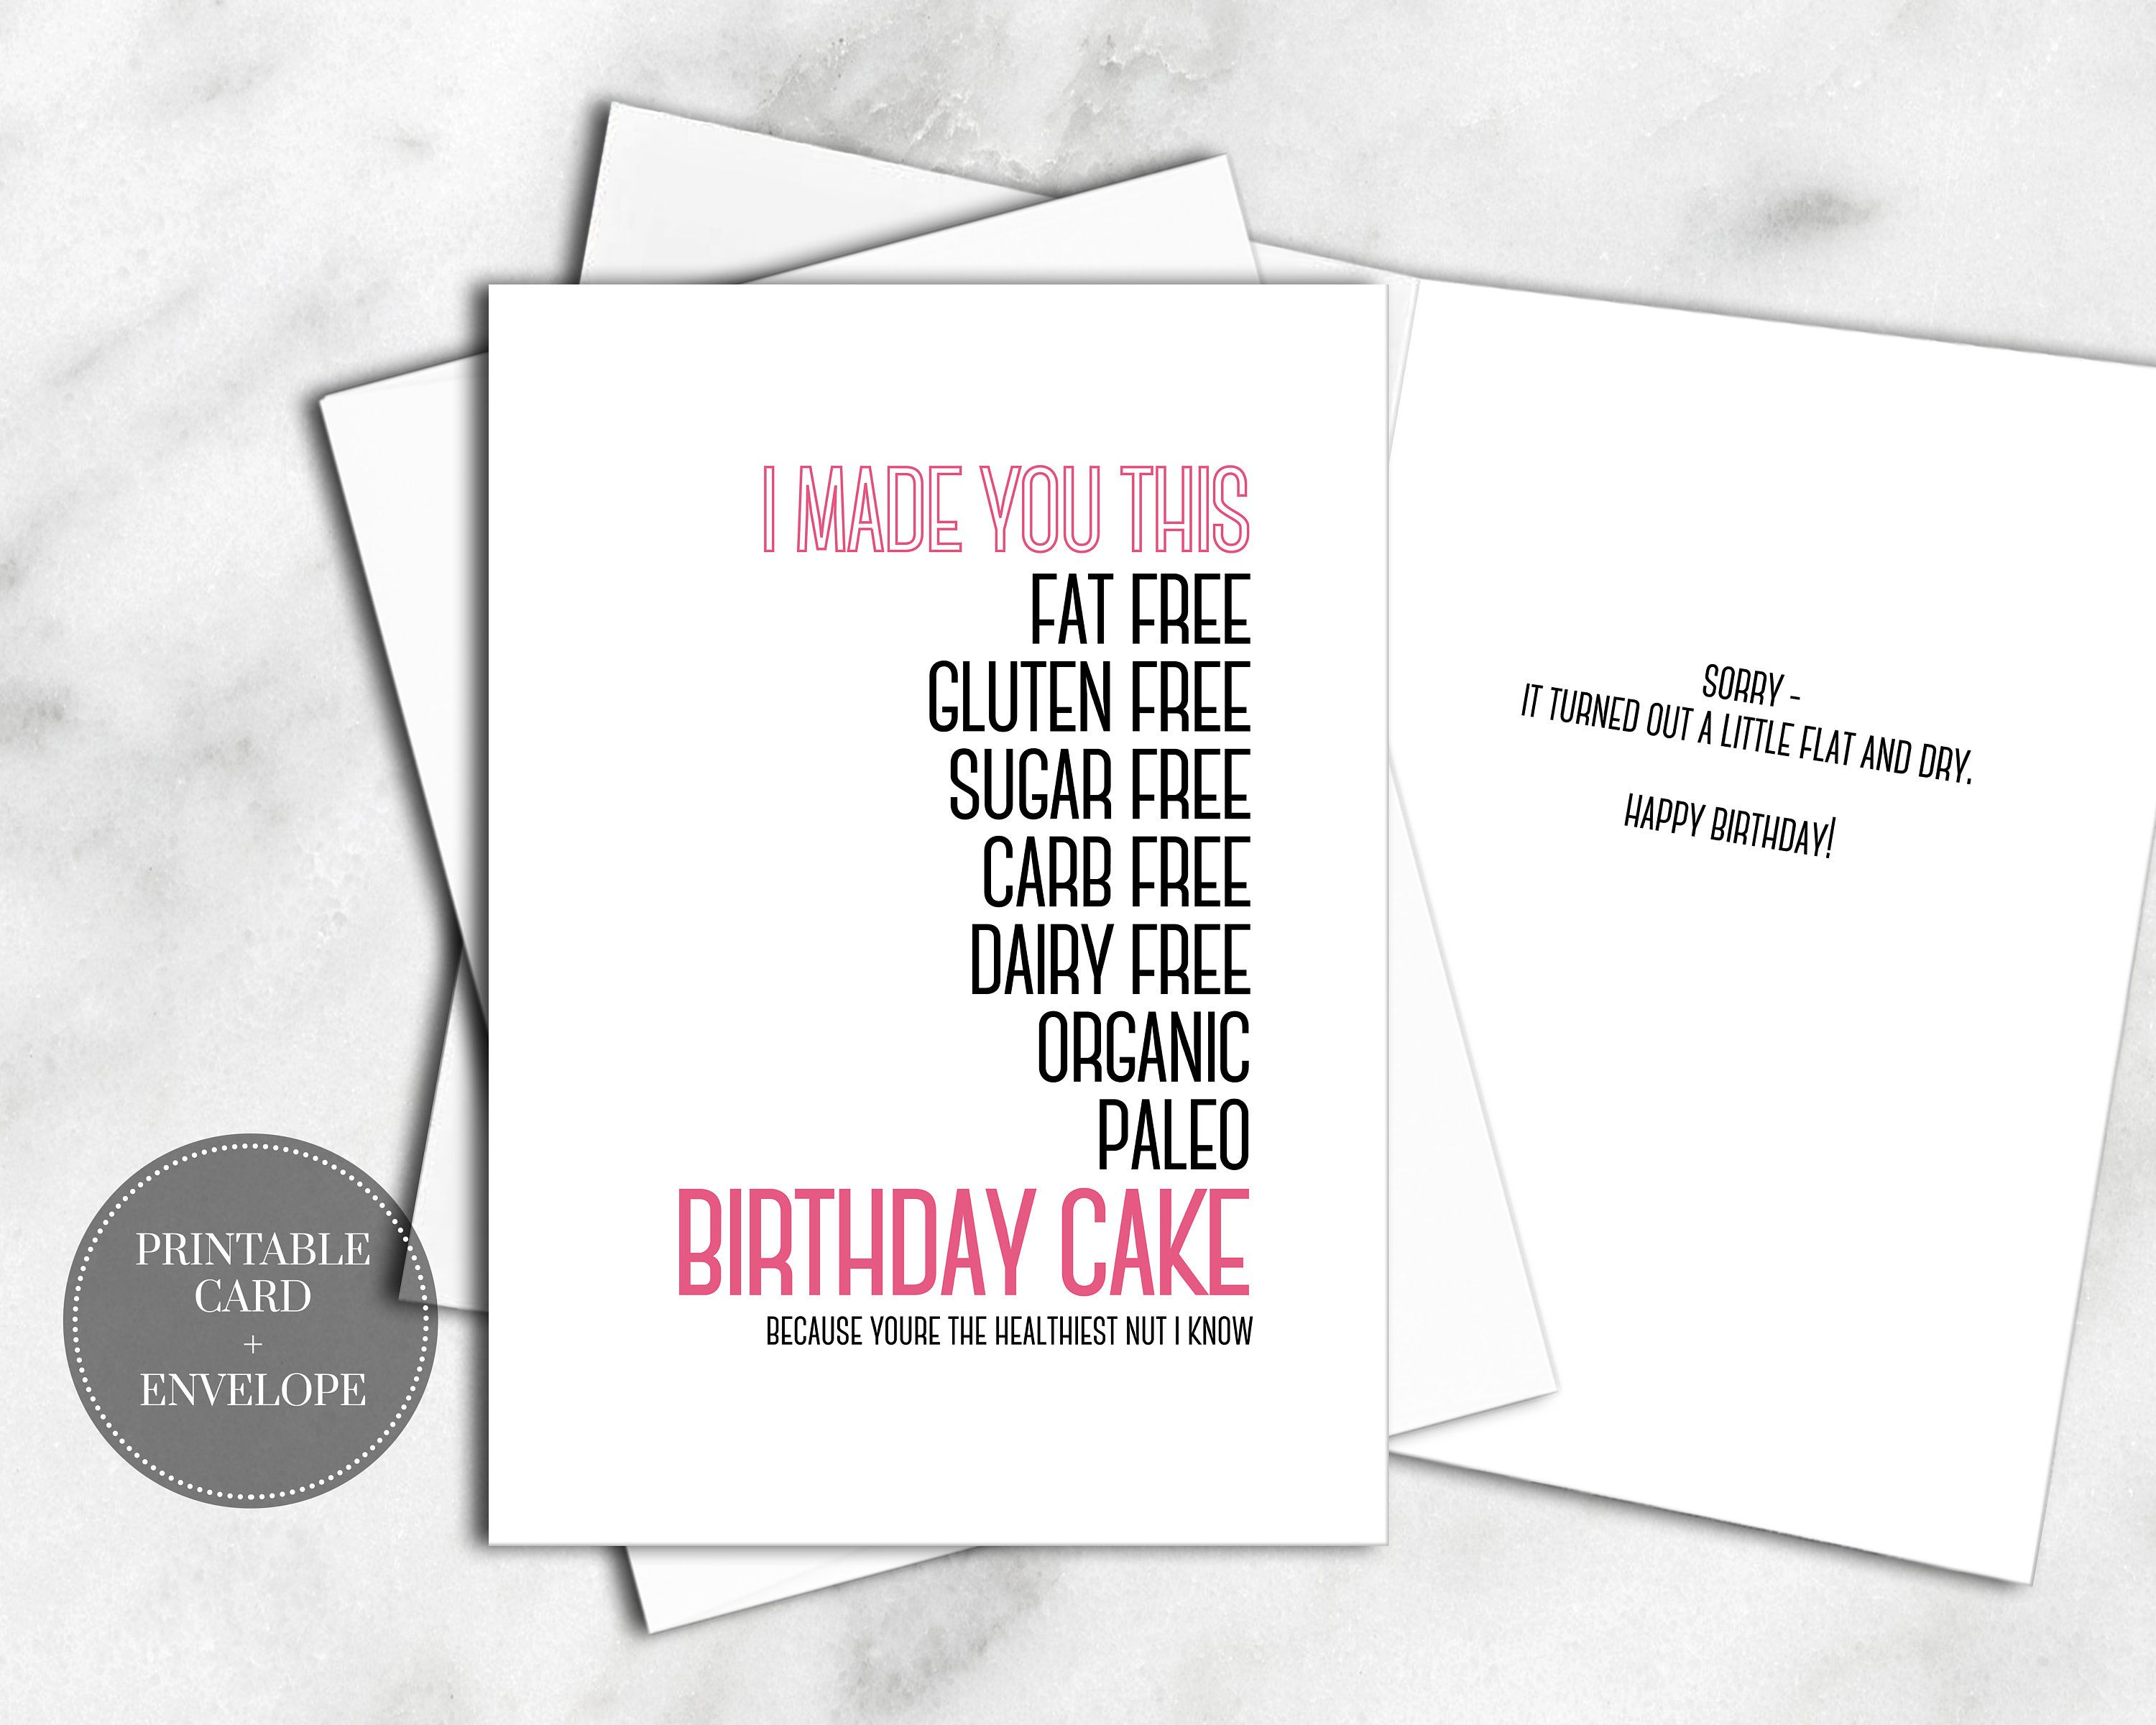 PRINTABLE Birthday Greeting Card INSTANT DOWNLOAD Envelope Healthy Workout Diet Cake Funny Sarcastic Hot Pink Saying Best Friend Sister Her By